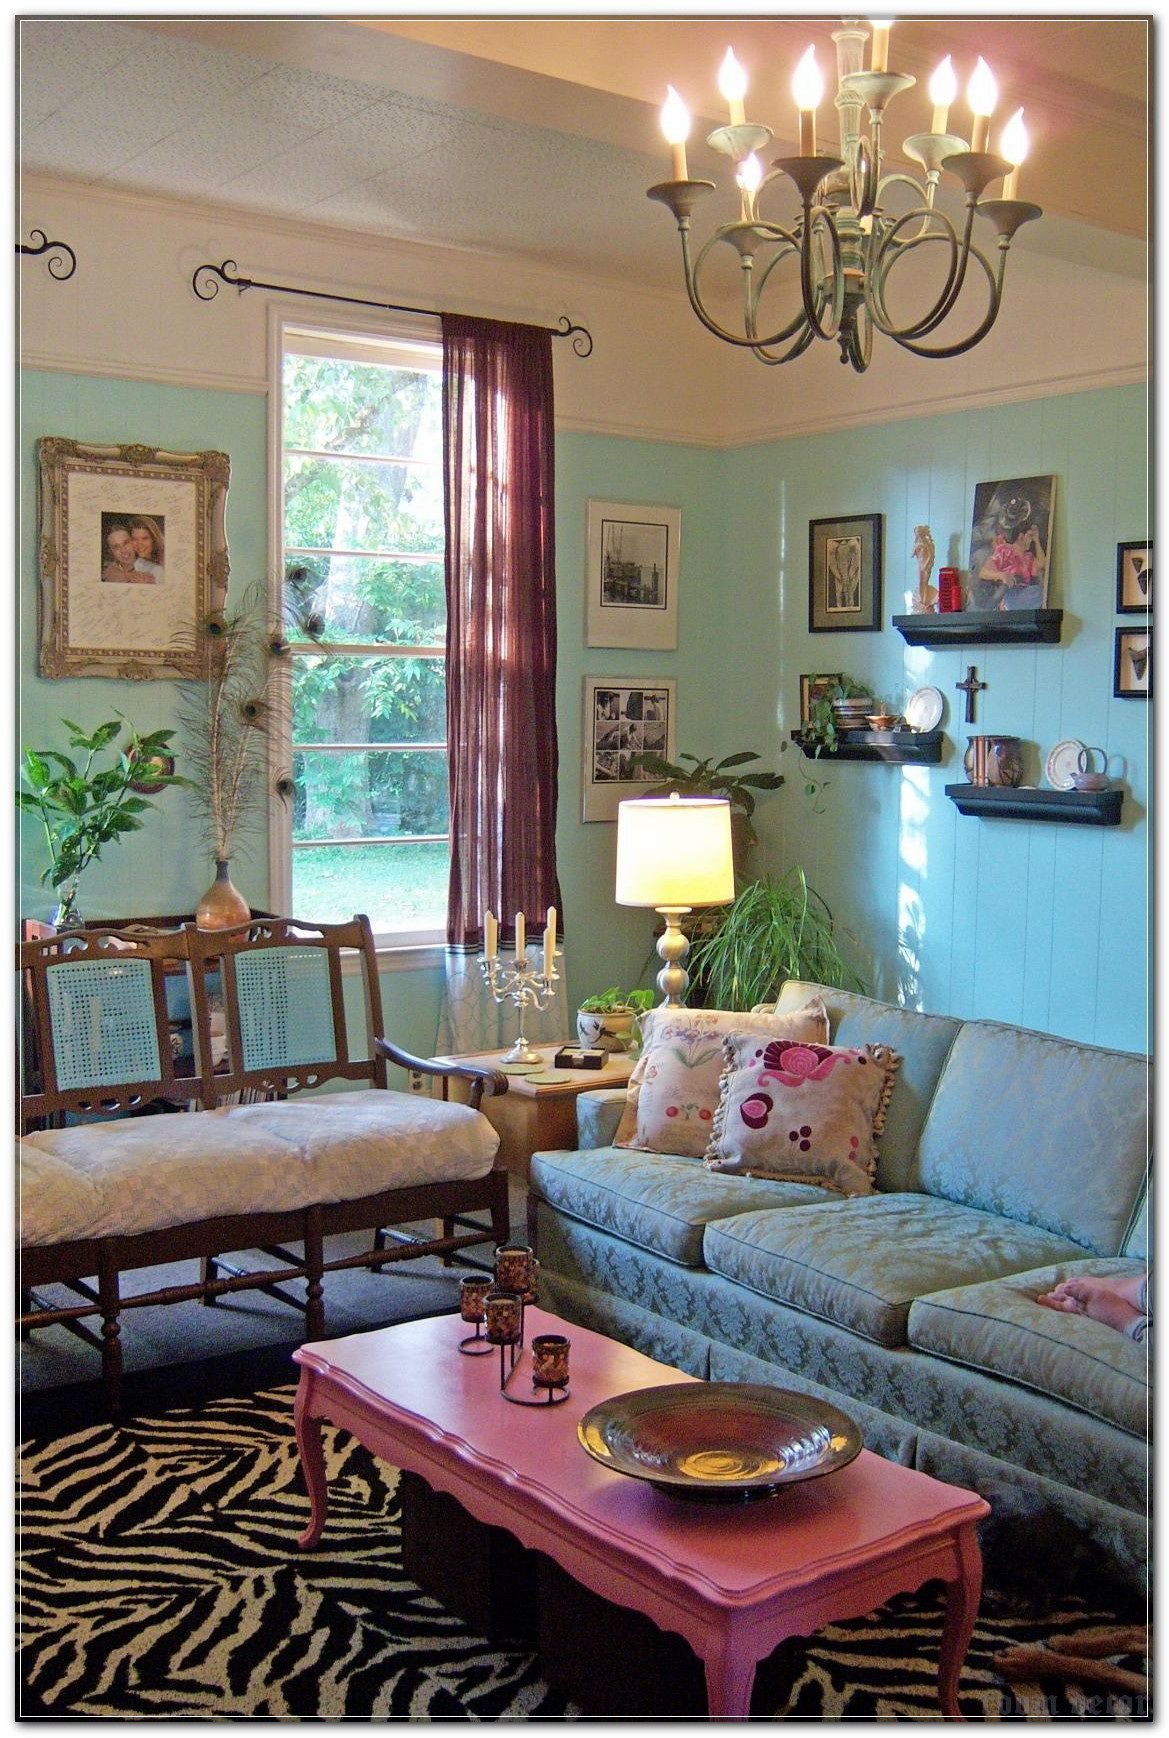 15 Tips For Room Decor Success